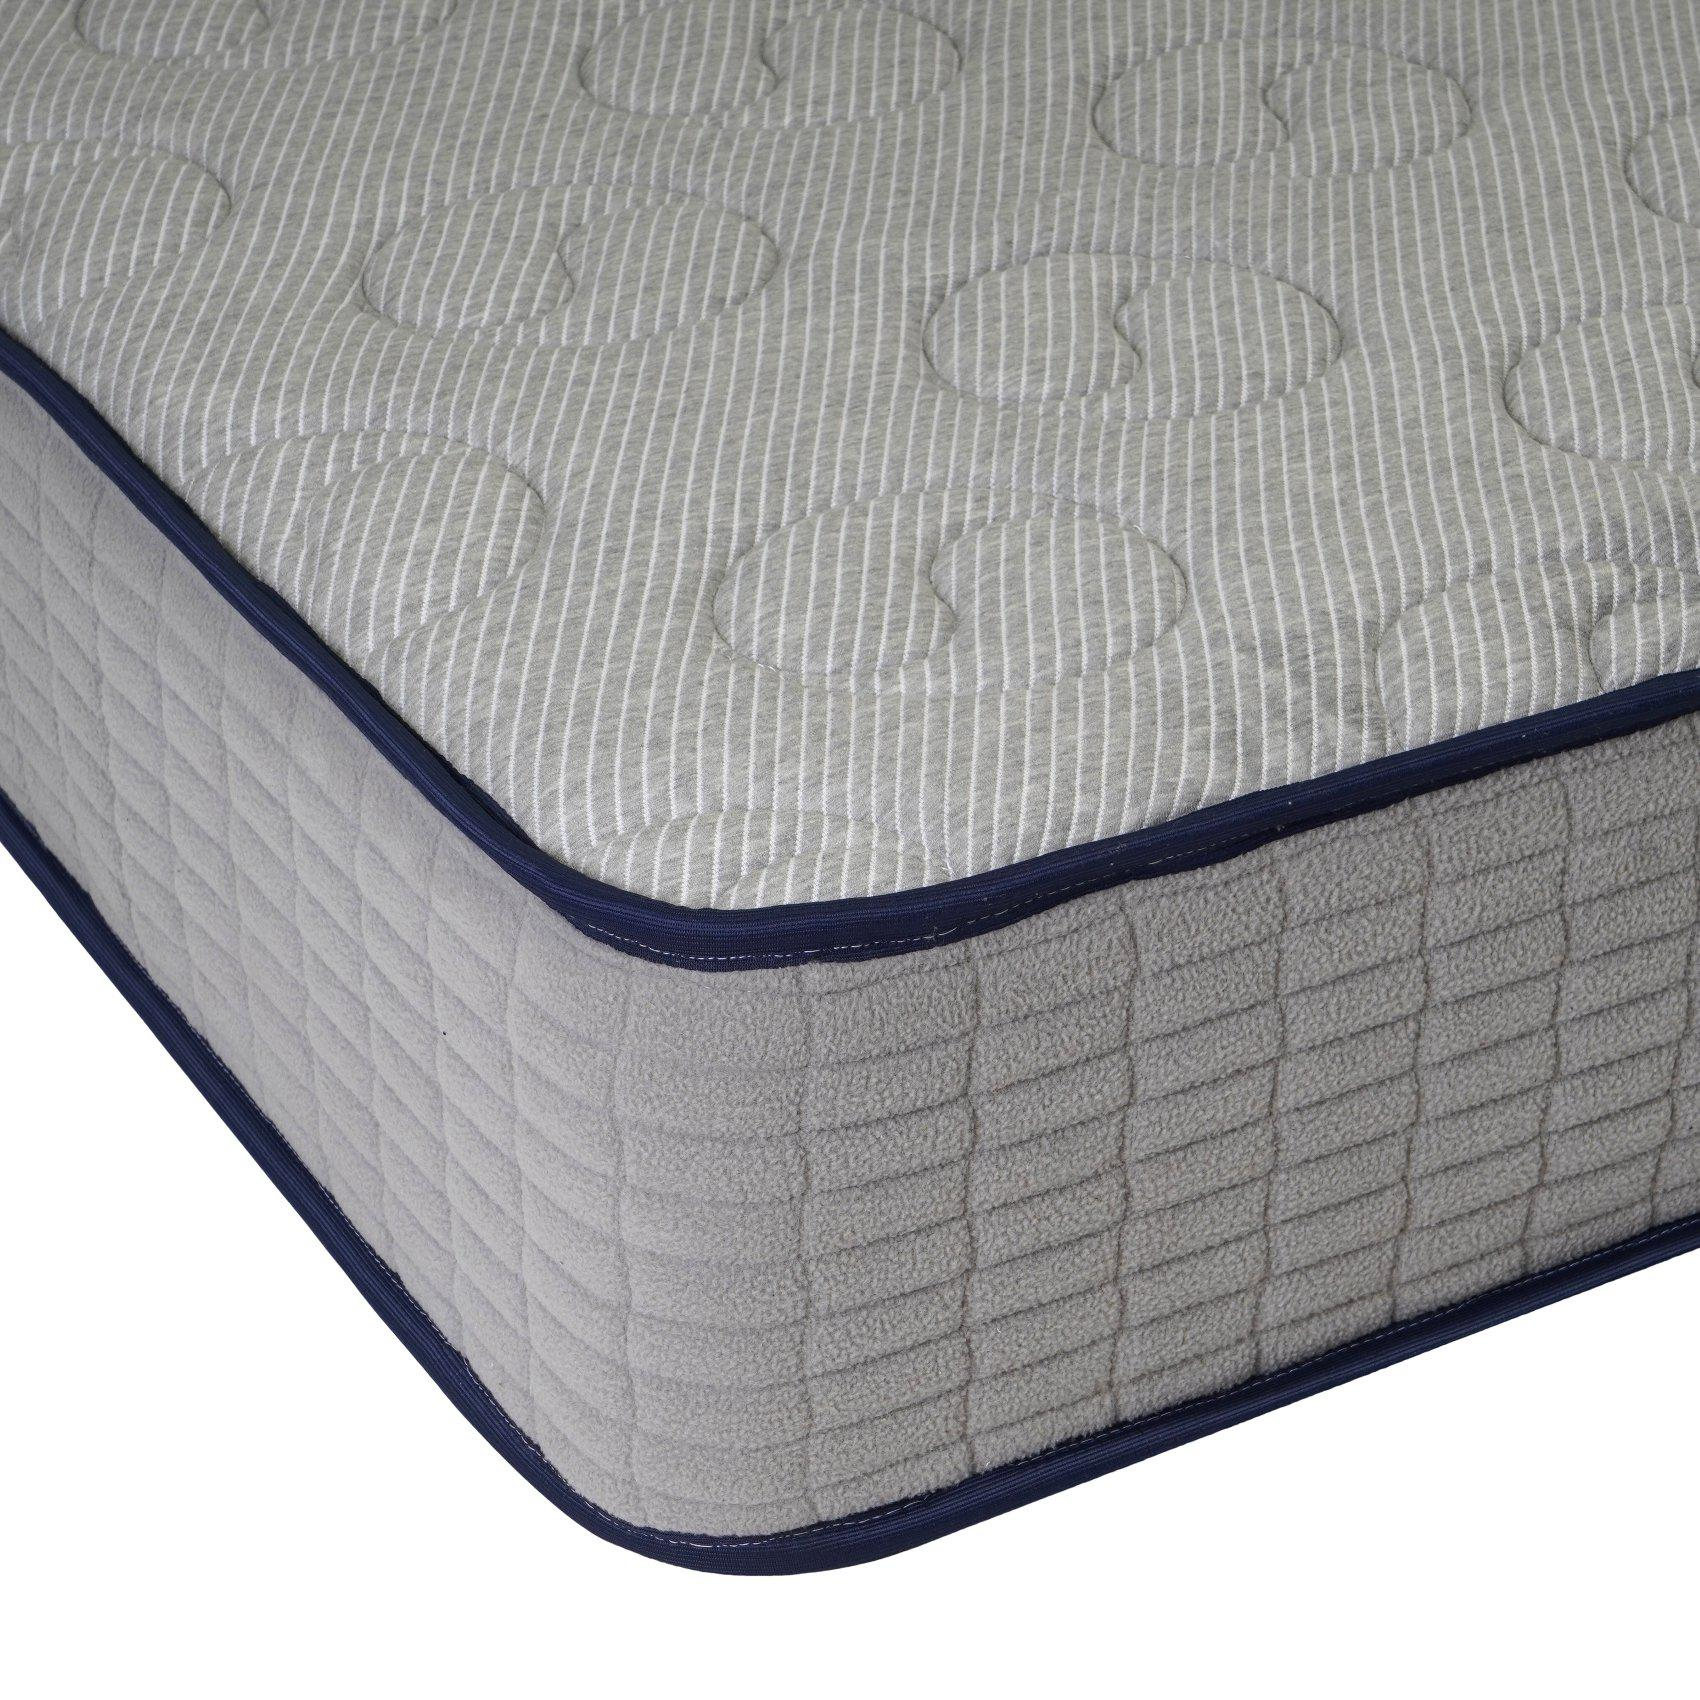 Memolife Memory Foam Mattress